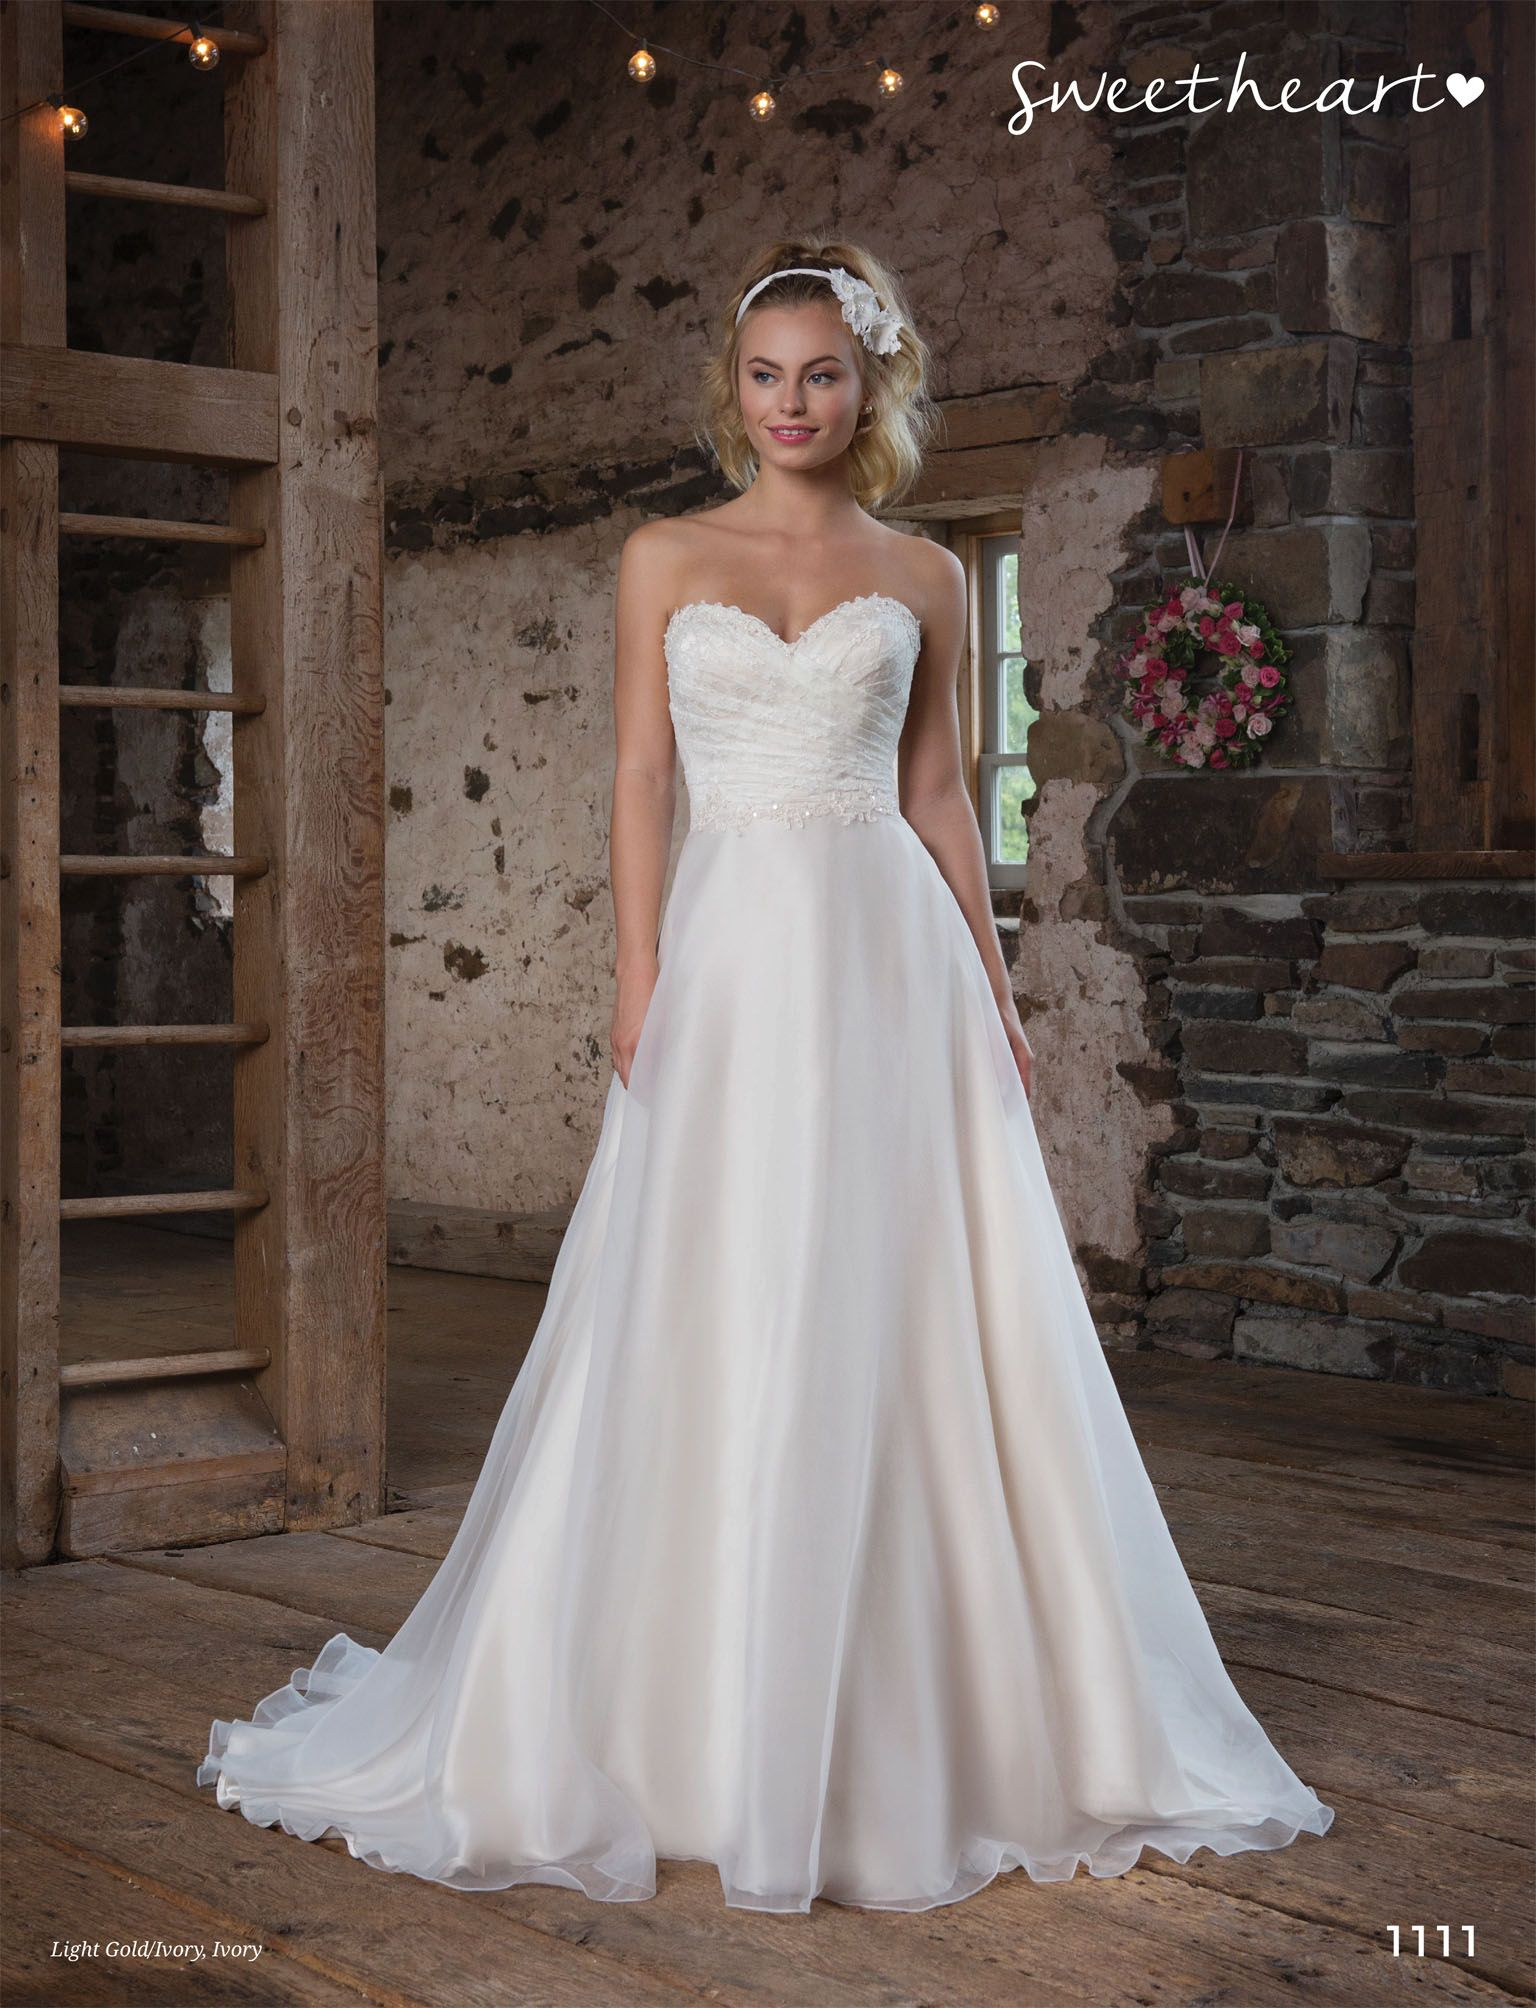 Sweetheart style girly details highlight this ball gown a